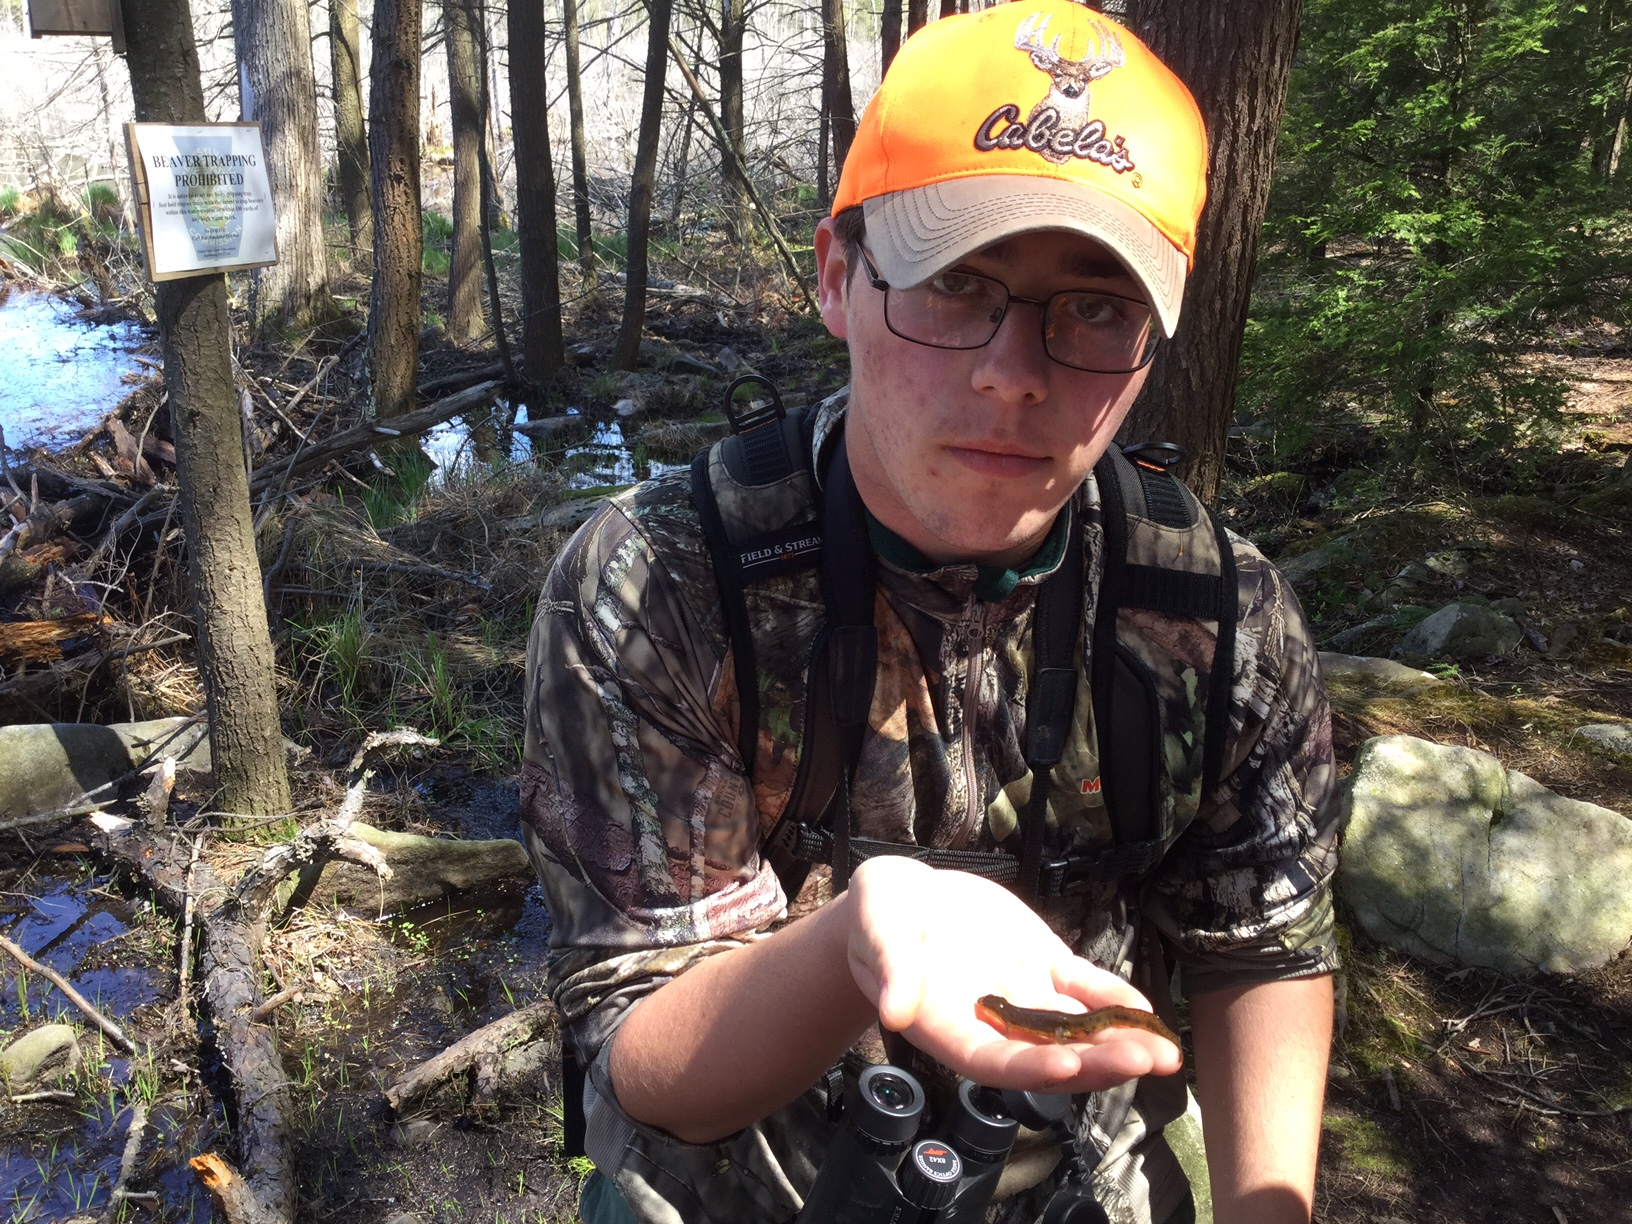 Milton Hershey School sophomore Jordan Edmonds recently was appointed to Governor Tom Wolf's 2017 Youth Council for Hunting, Fishing and Conservation.